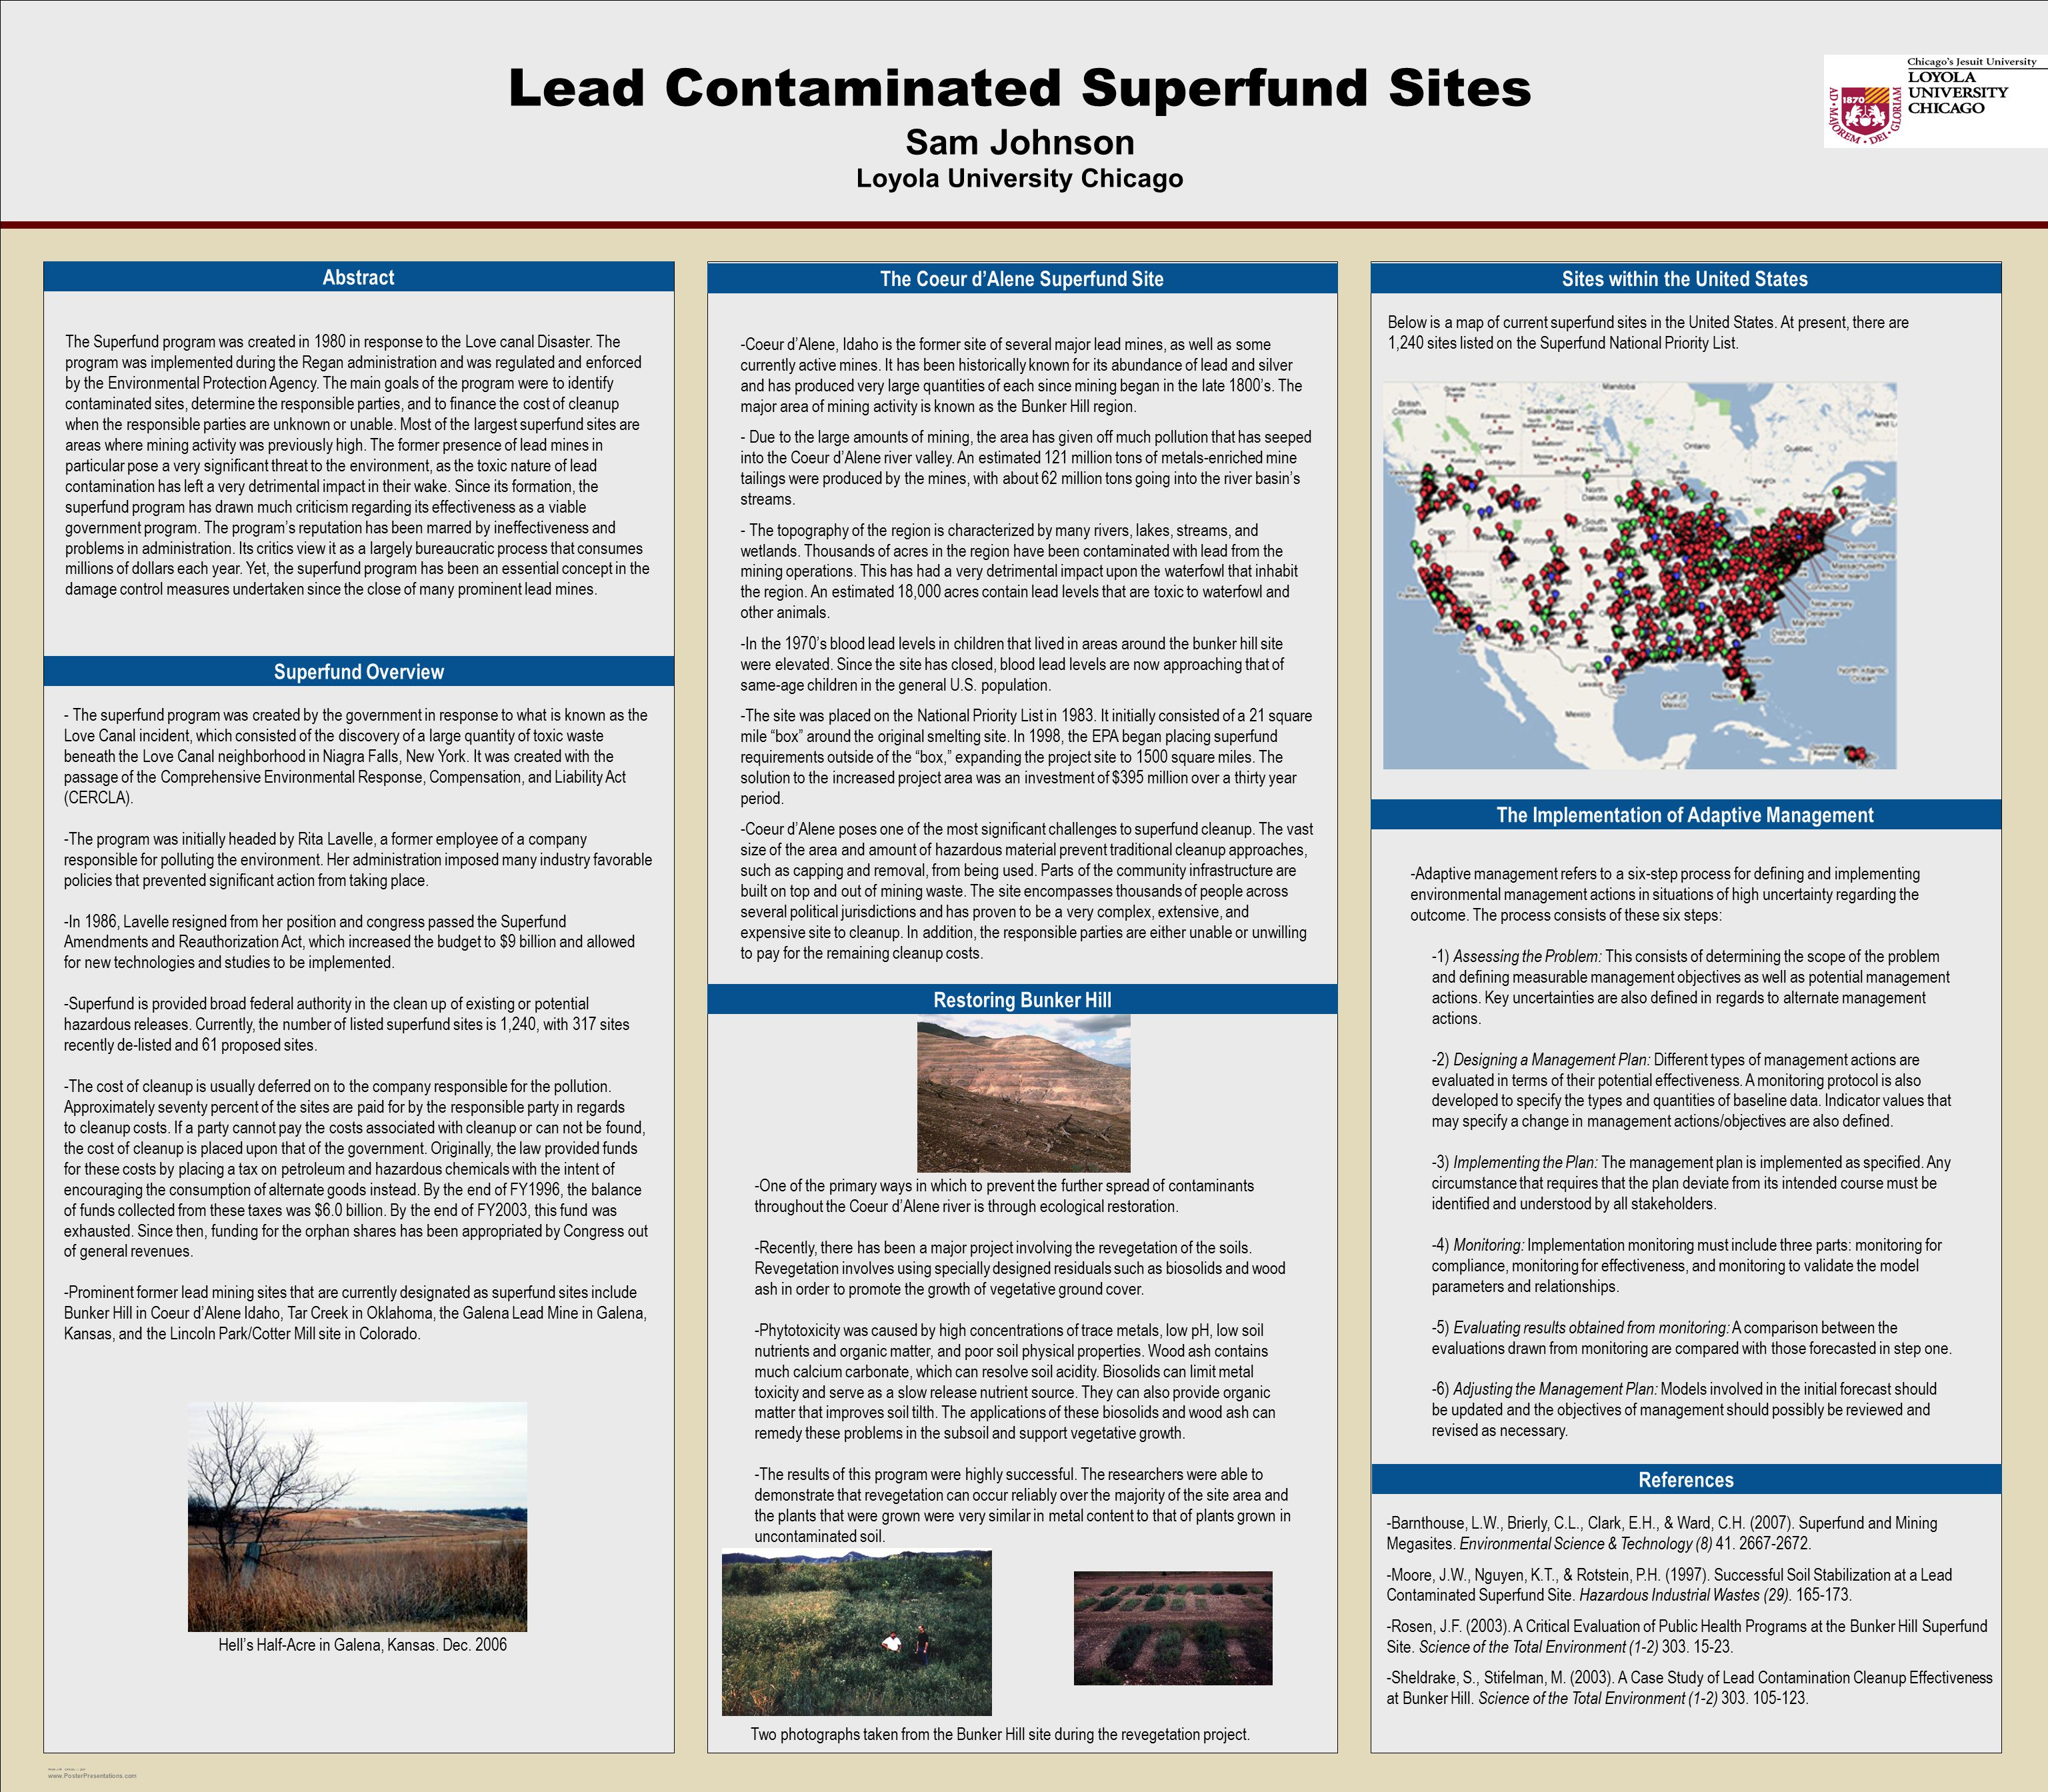 TEMPLATE DESIGN © 2007 www.PosterPresentations.com Lead Contaminated Superfund Sites Sam Johnson Loyola University Chicago Abstract The Superfund program was created in 1980 in response to the Love canal Disaster.